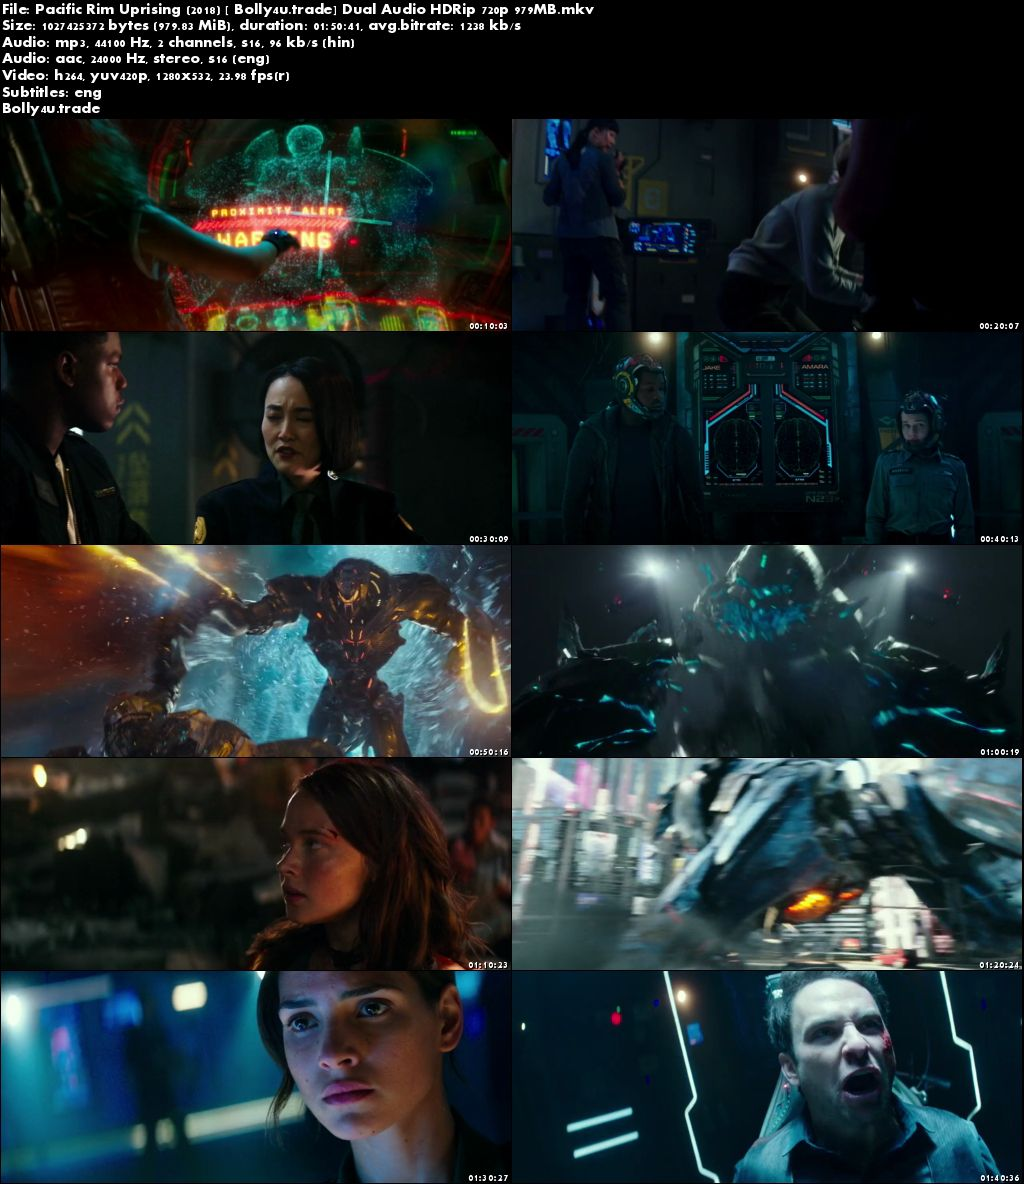 Pacific Rim Uprising 2018 HDRip 480p Hindi Dual Audio 350Mb ESub Download